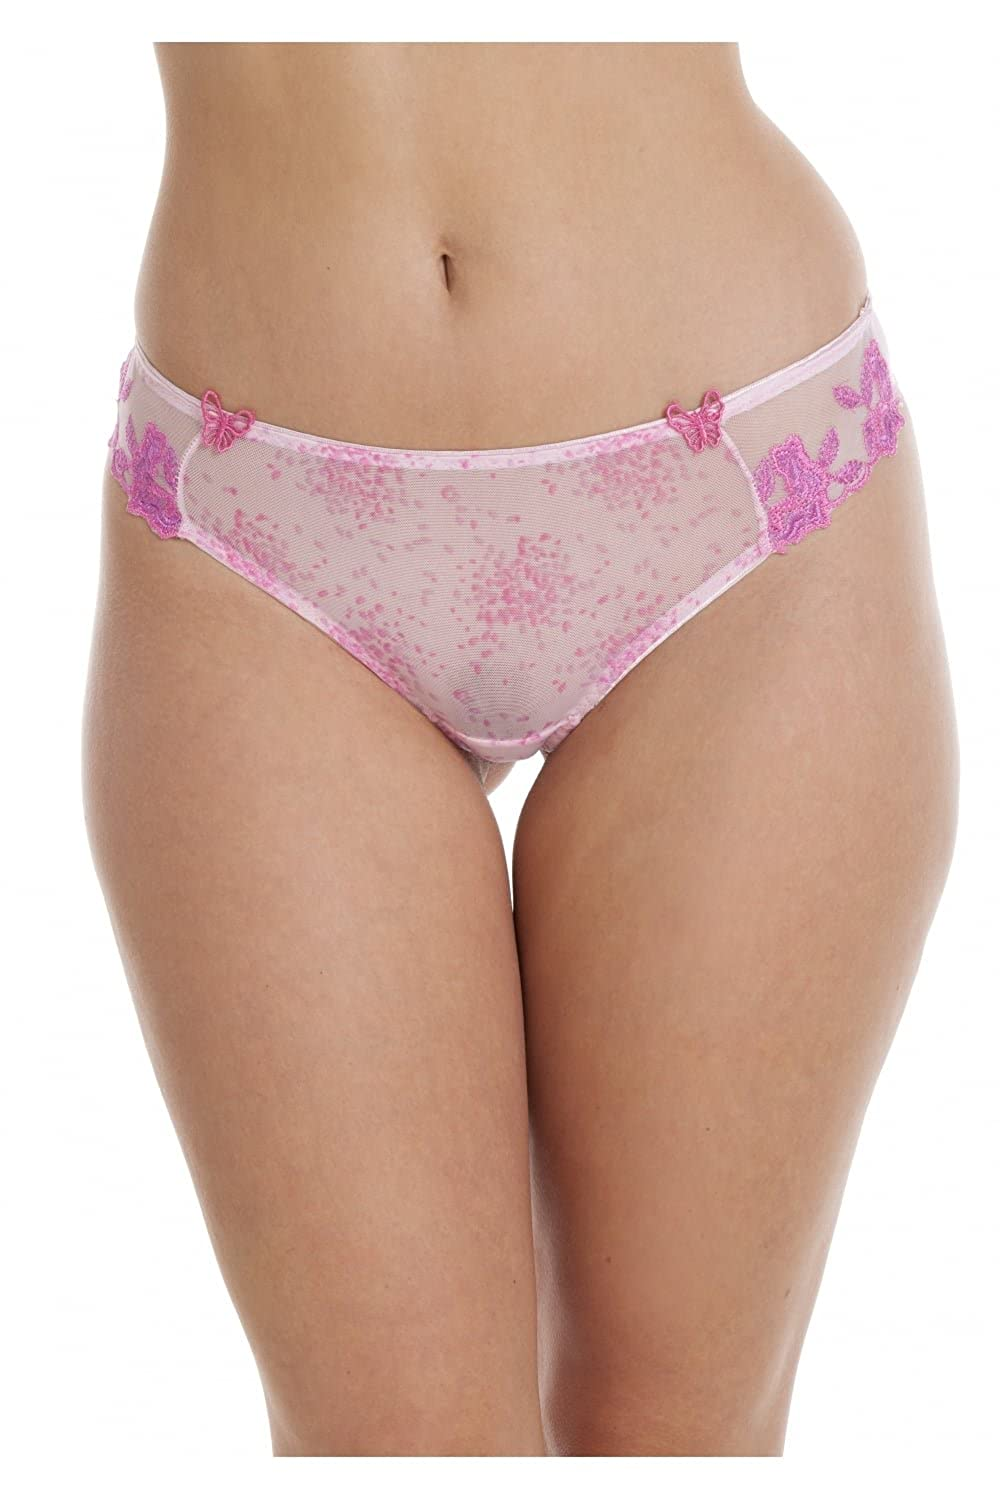 Camille Womens Ladies Sheer Mesh Laced Pink Underwear Thong Sizes 8-18